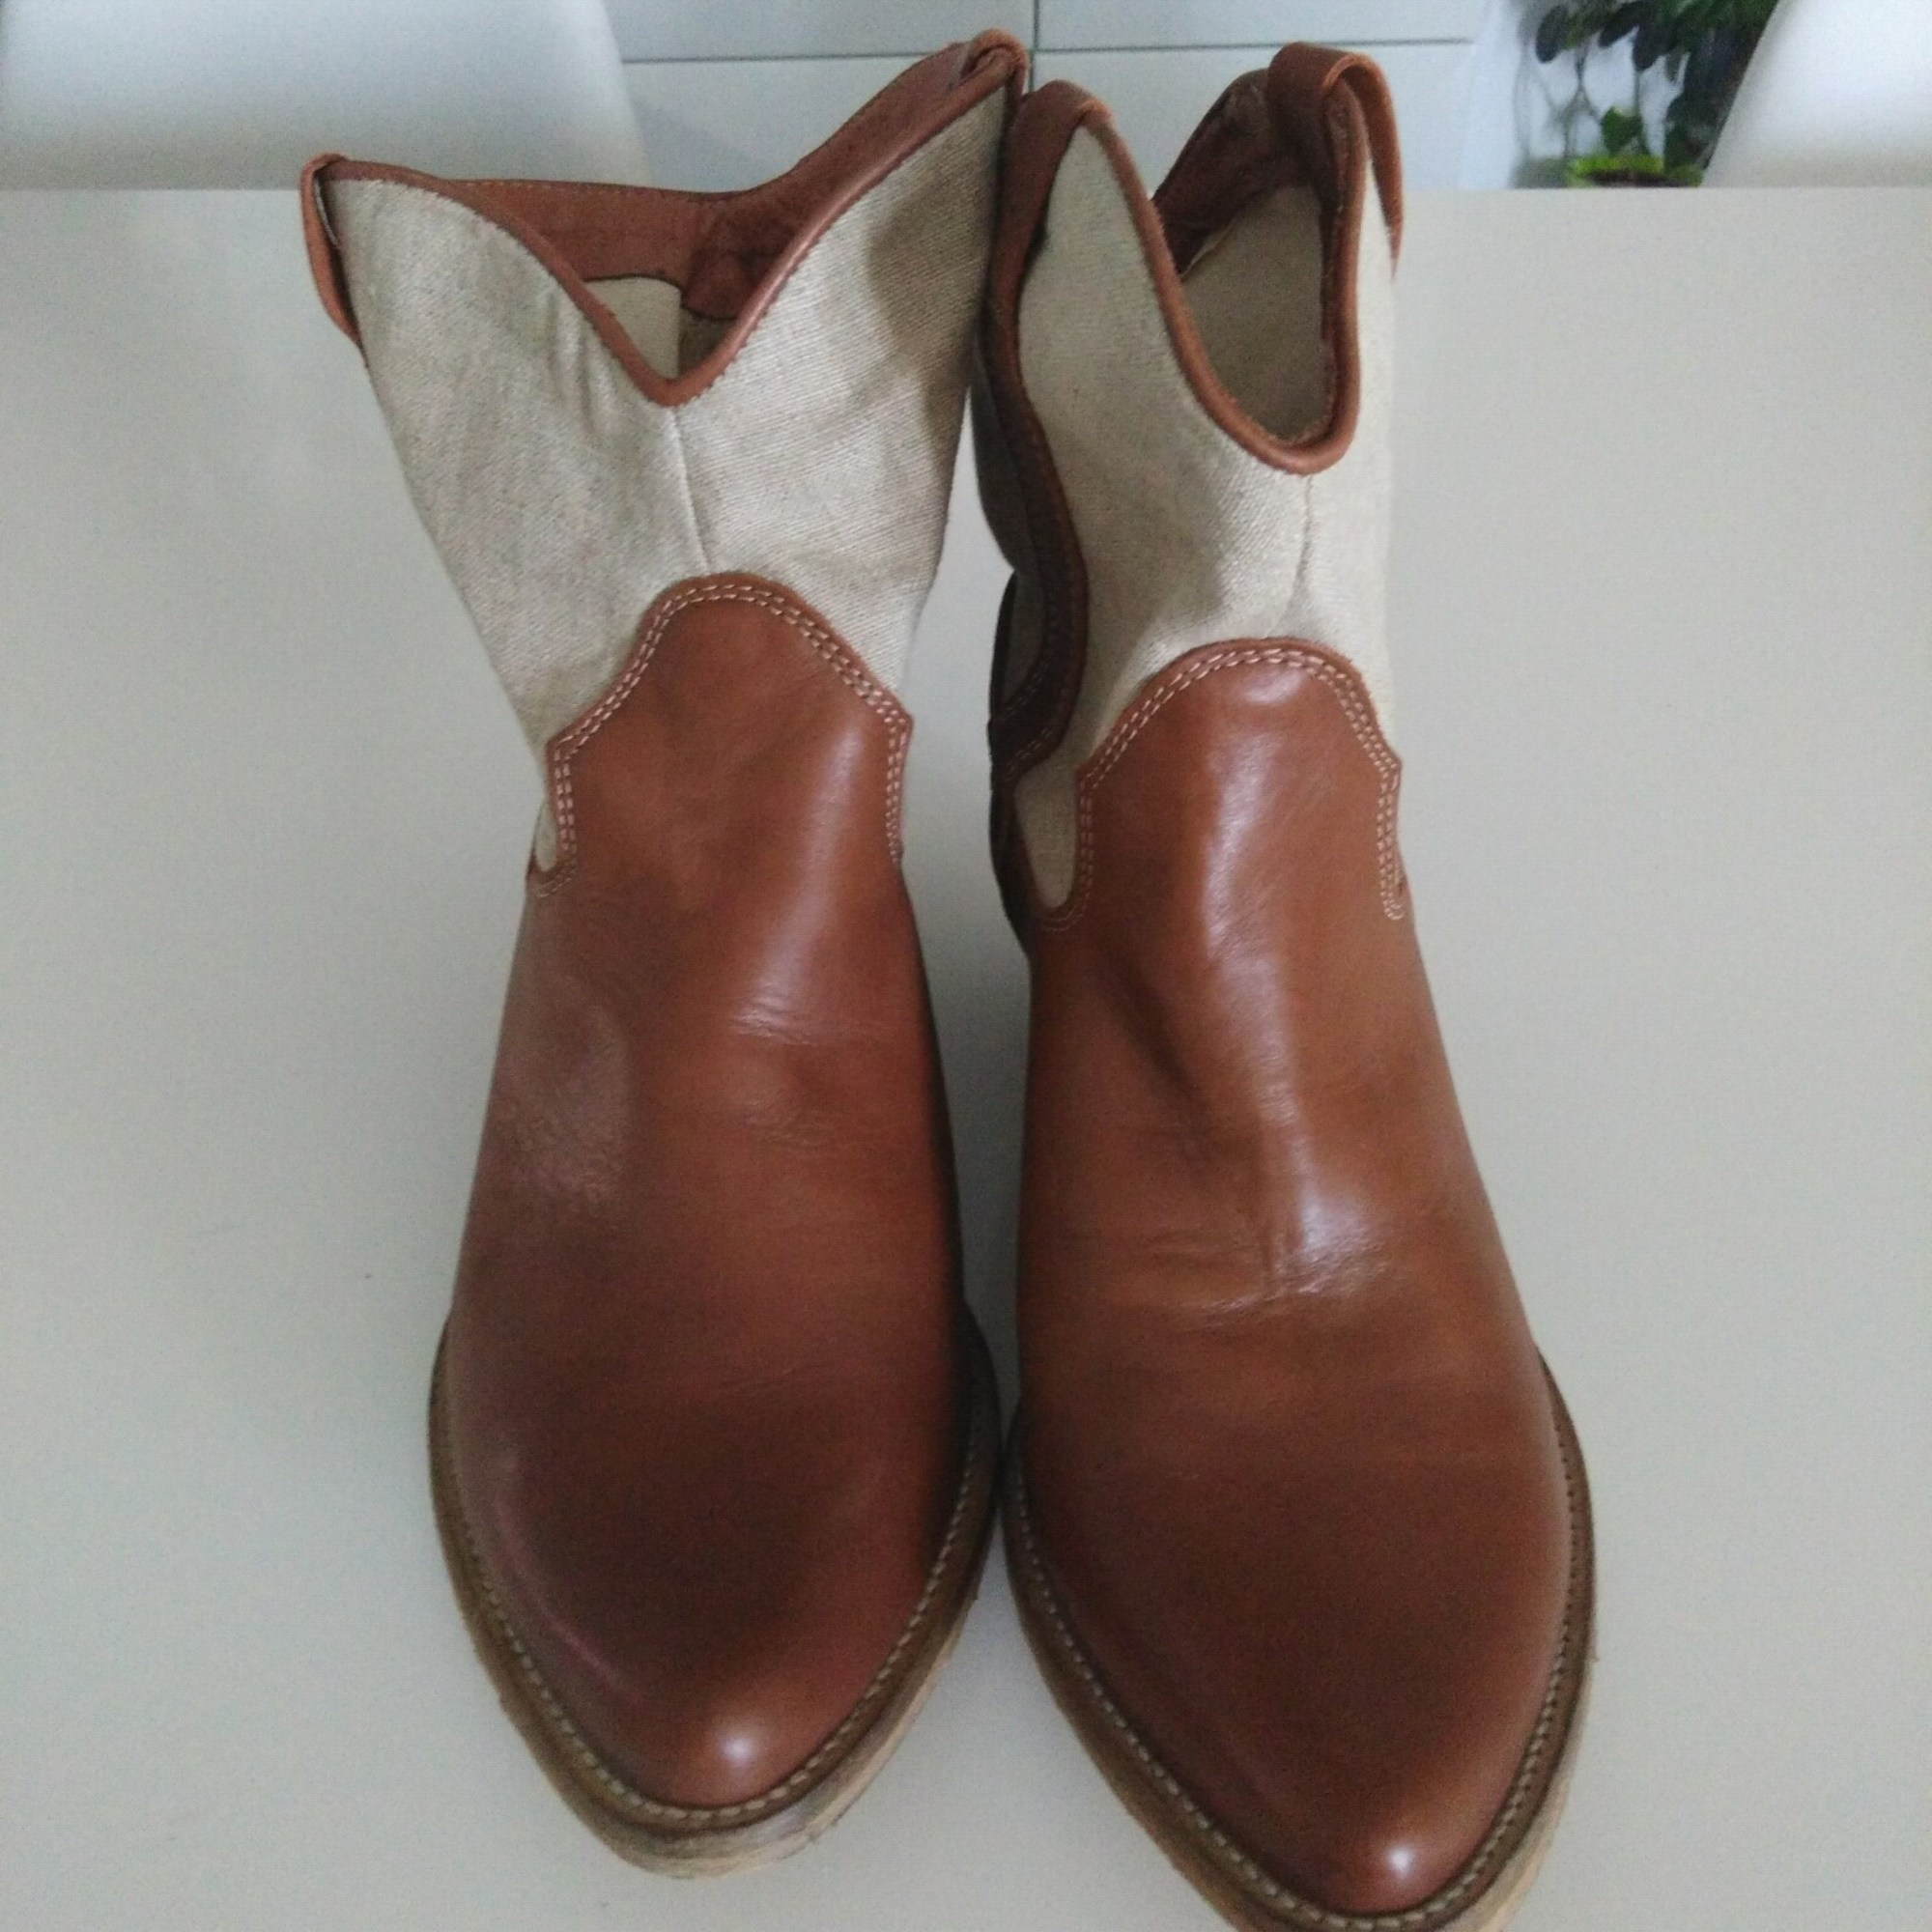 5157134 Santiags bottines 39 cowboy low ERAM boots marron R0zdr0wqx